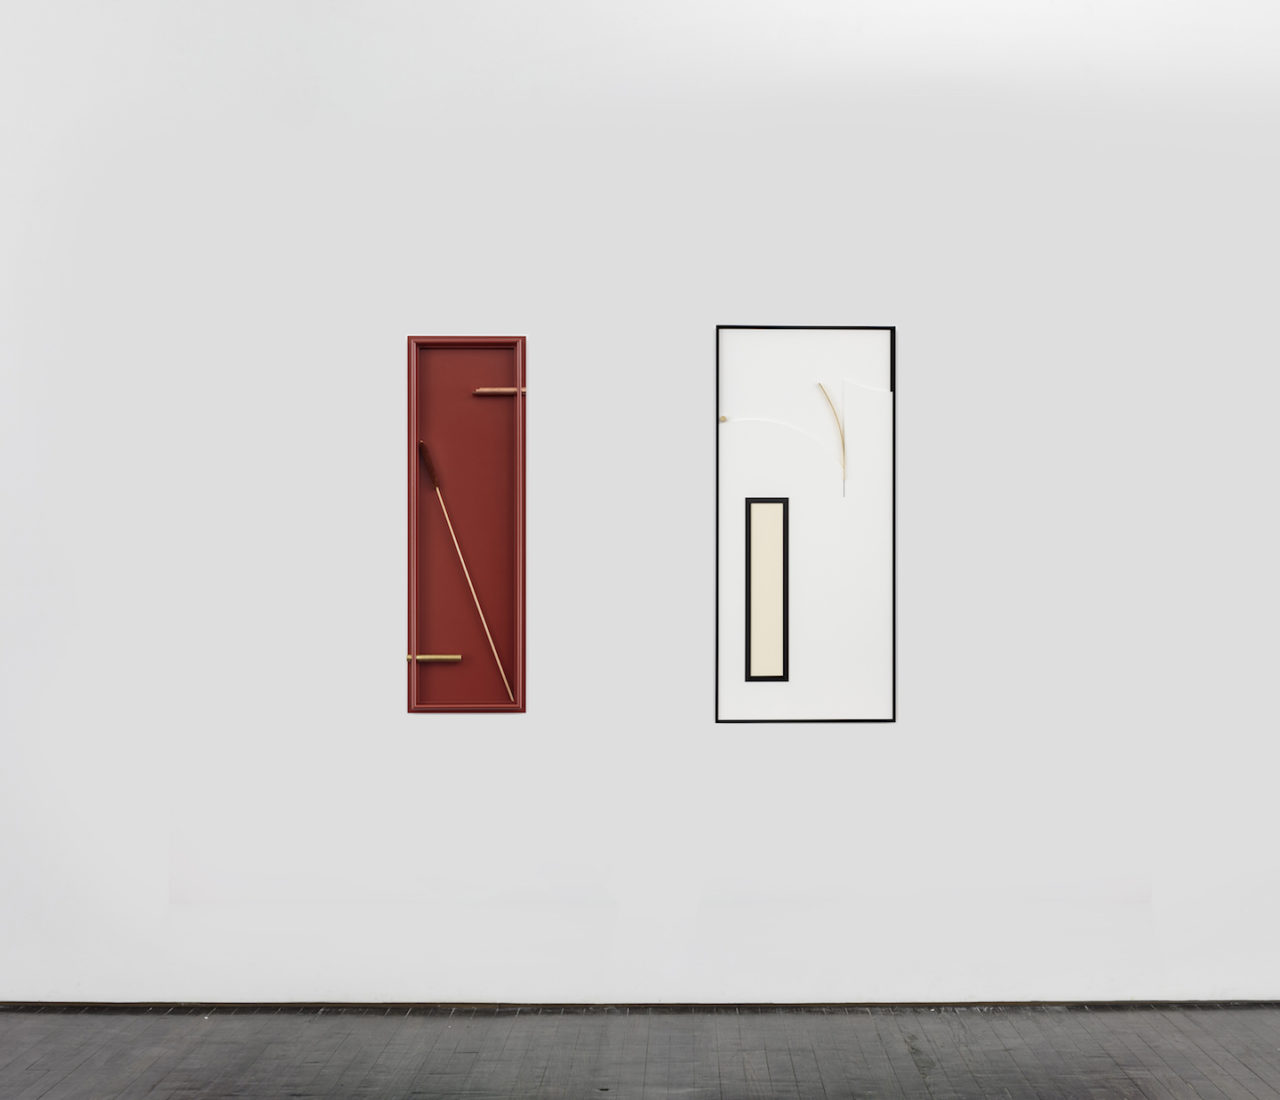 Noah's Ark | Installation view, Ned Colclough